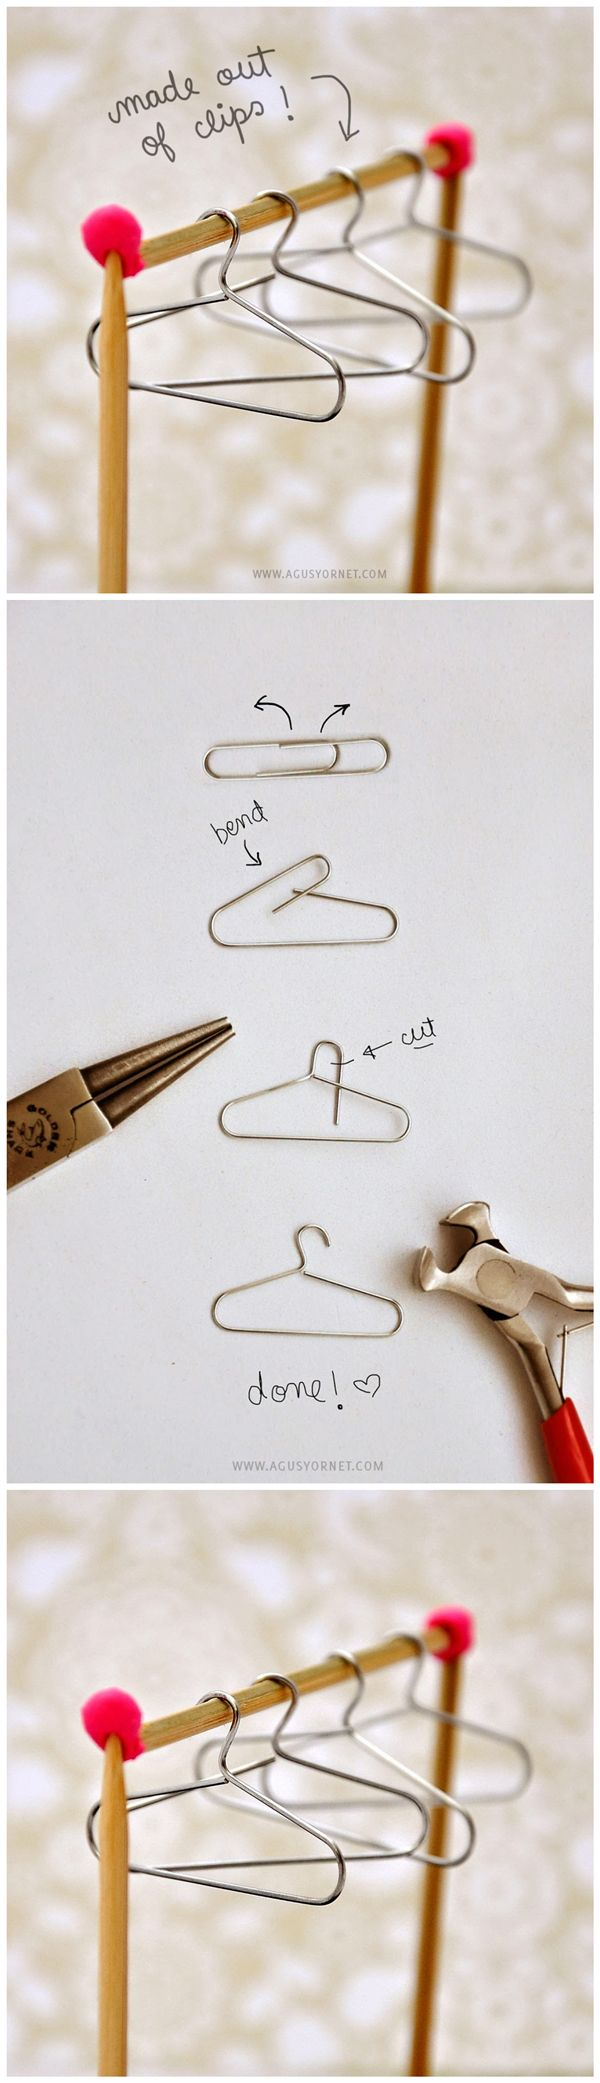 How To #Diy From Paper Clips To #Mini #Hangers Cute to hang mini Christmas sweater ornament on!